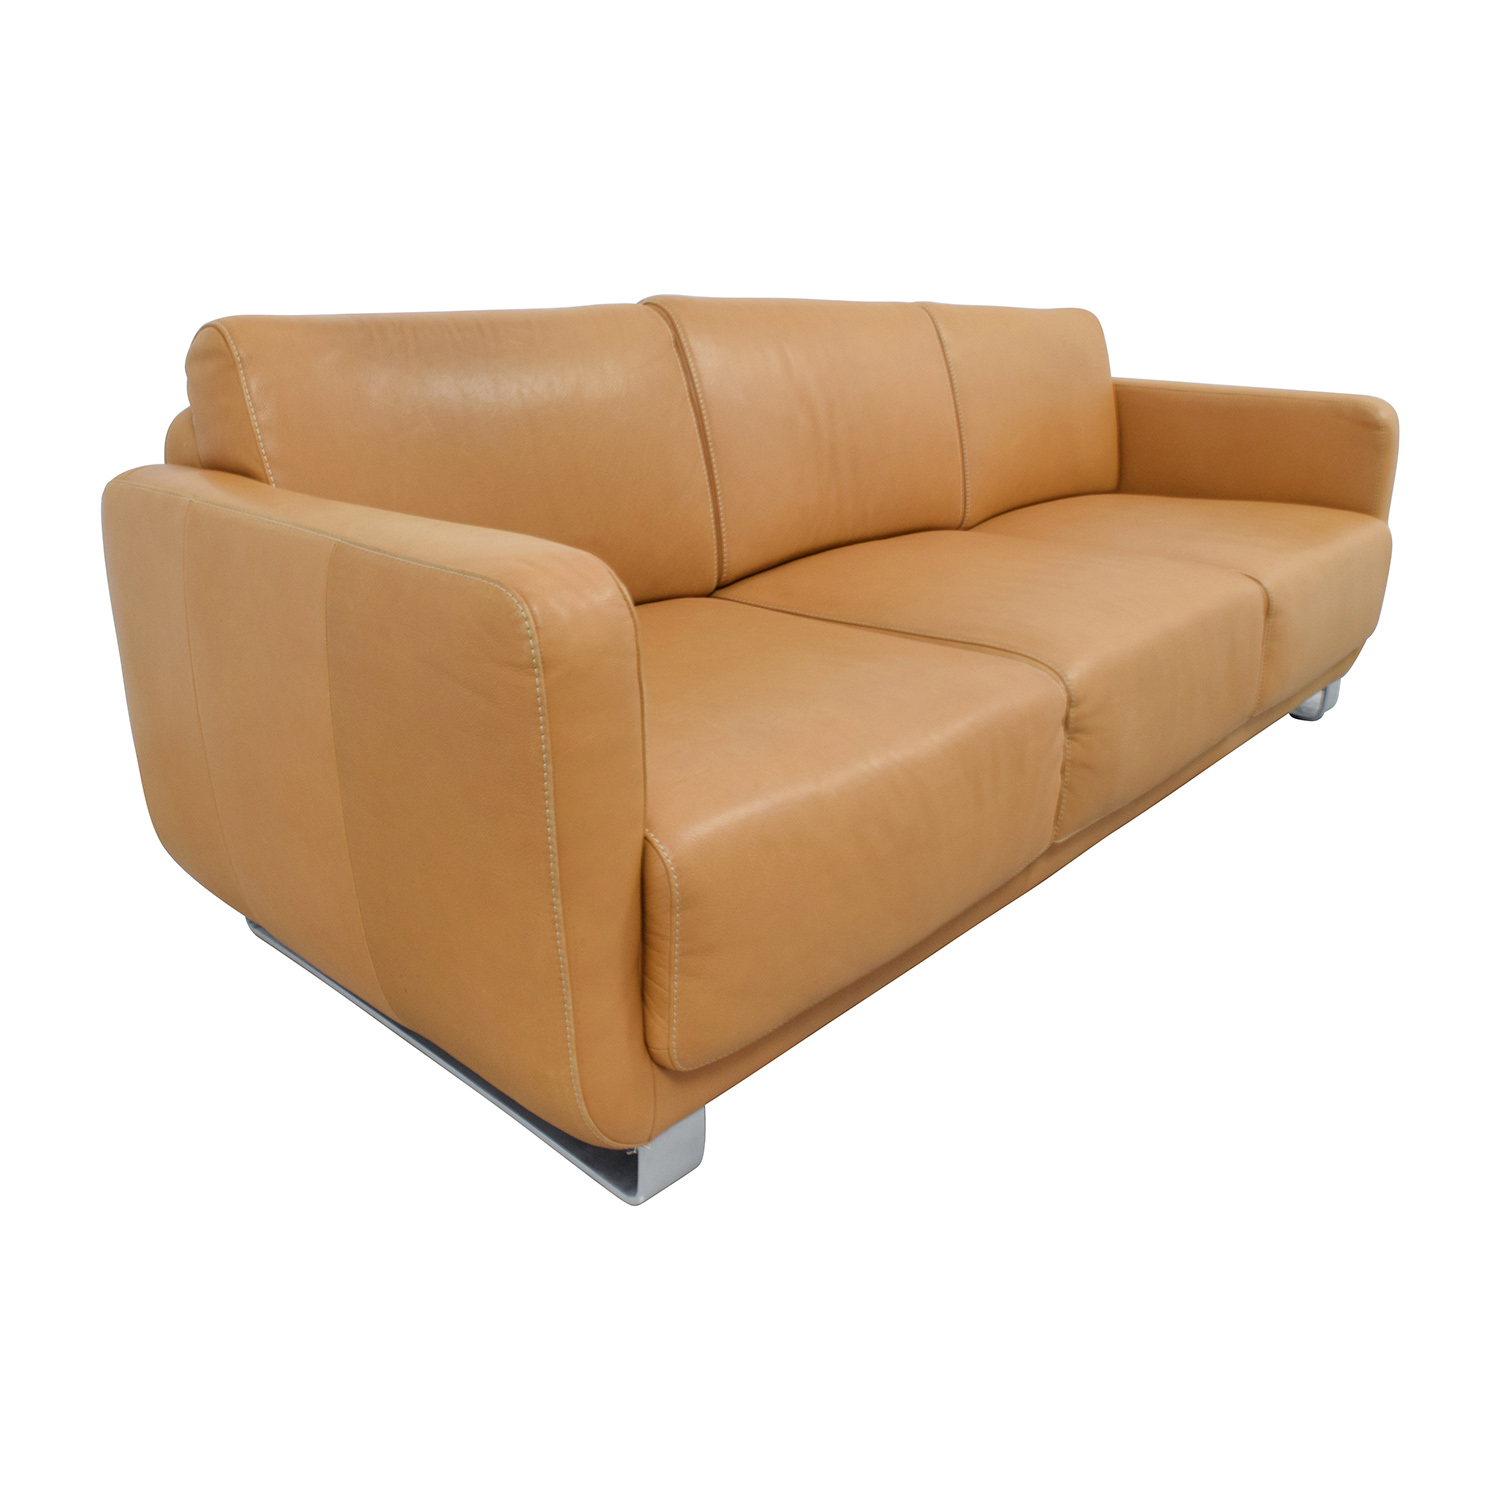 68 off w schillig w schillig light brown leather sofa. Black Bedroom Furniture Sets. Home Design Ideas